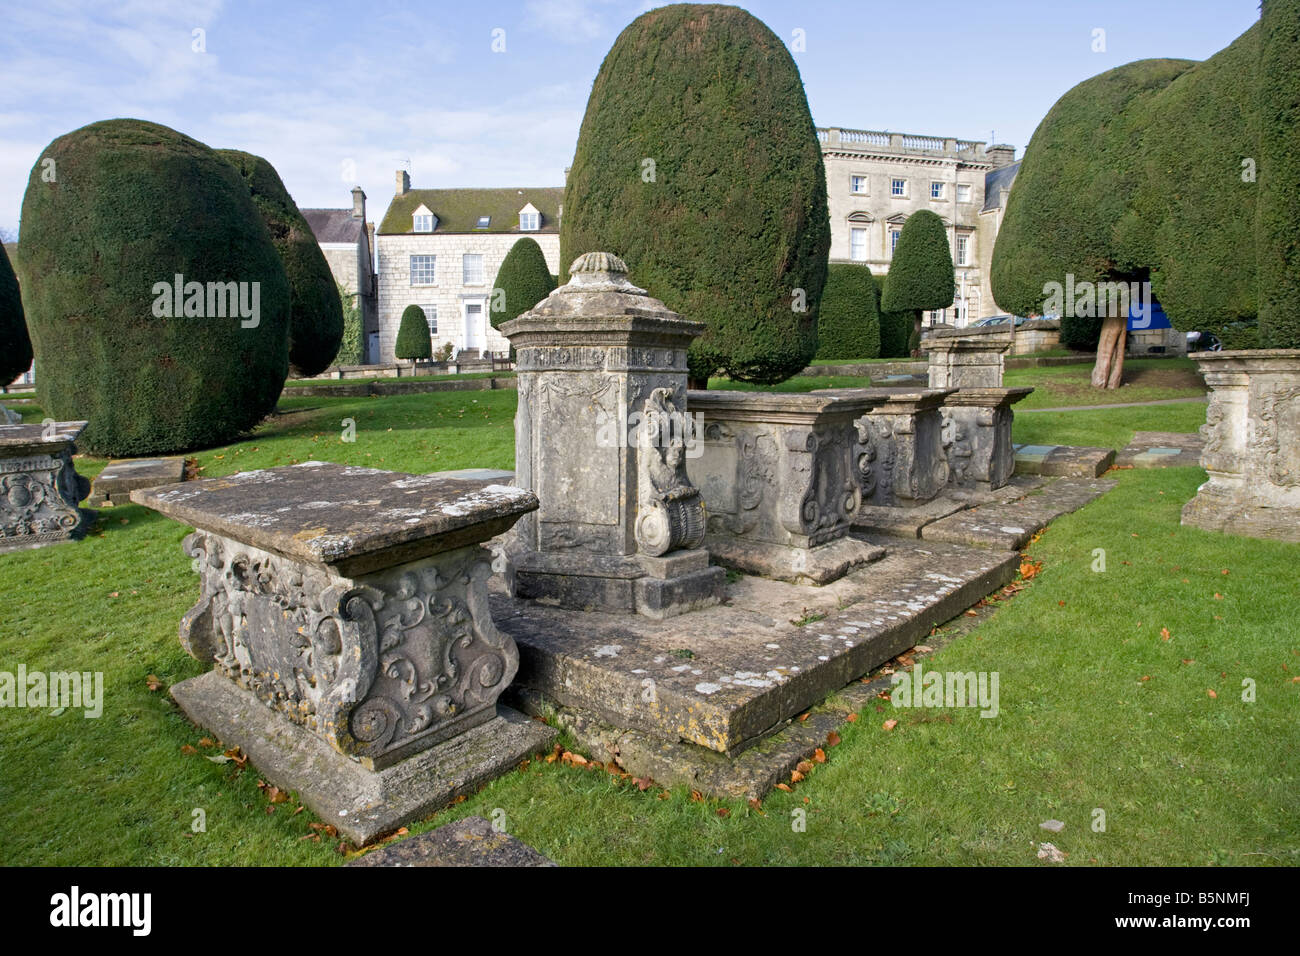 Pedestal and table tombs amongst yew trees St Marys Church Painswick Cotswolds UK - Stock Image